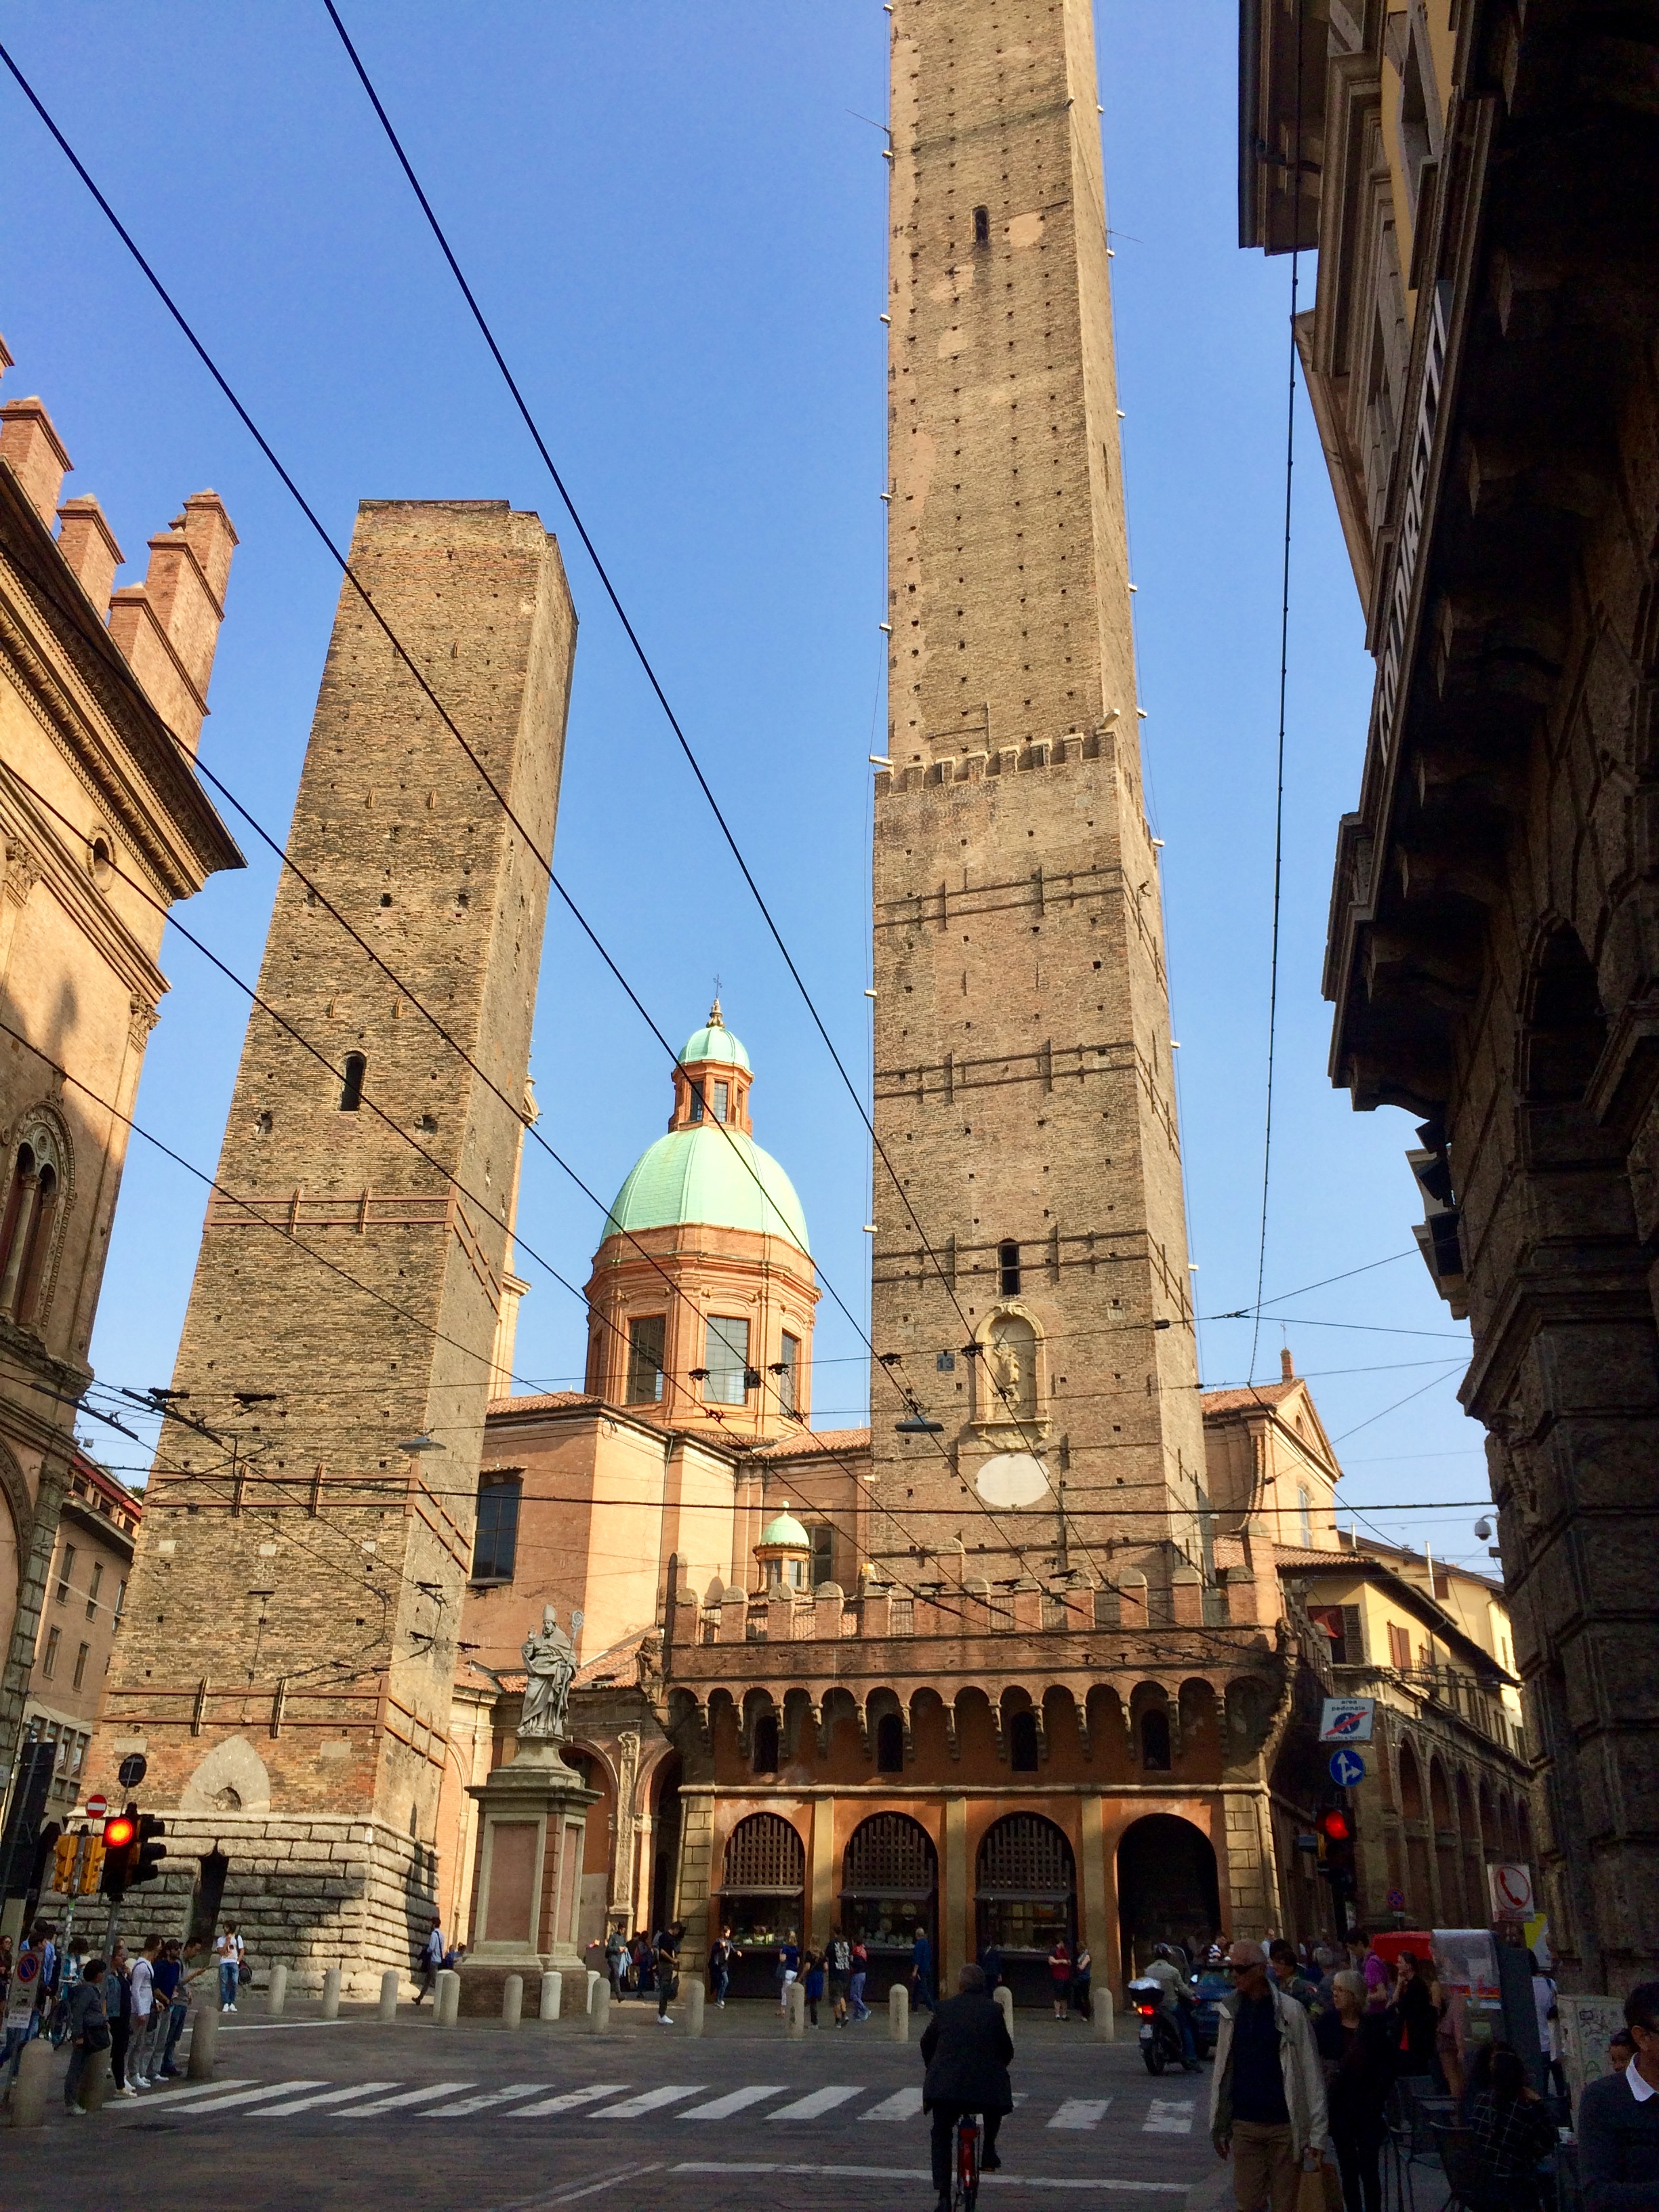 Duo Torri - 98m tall and 898 yrs old